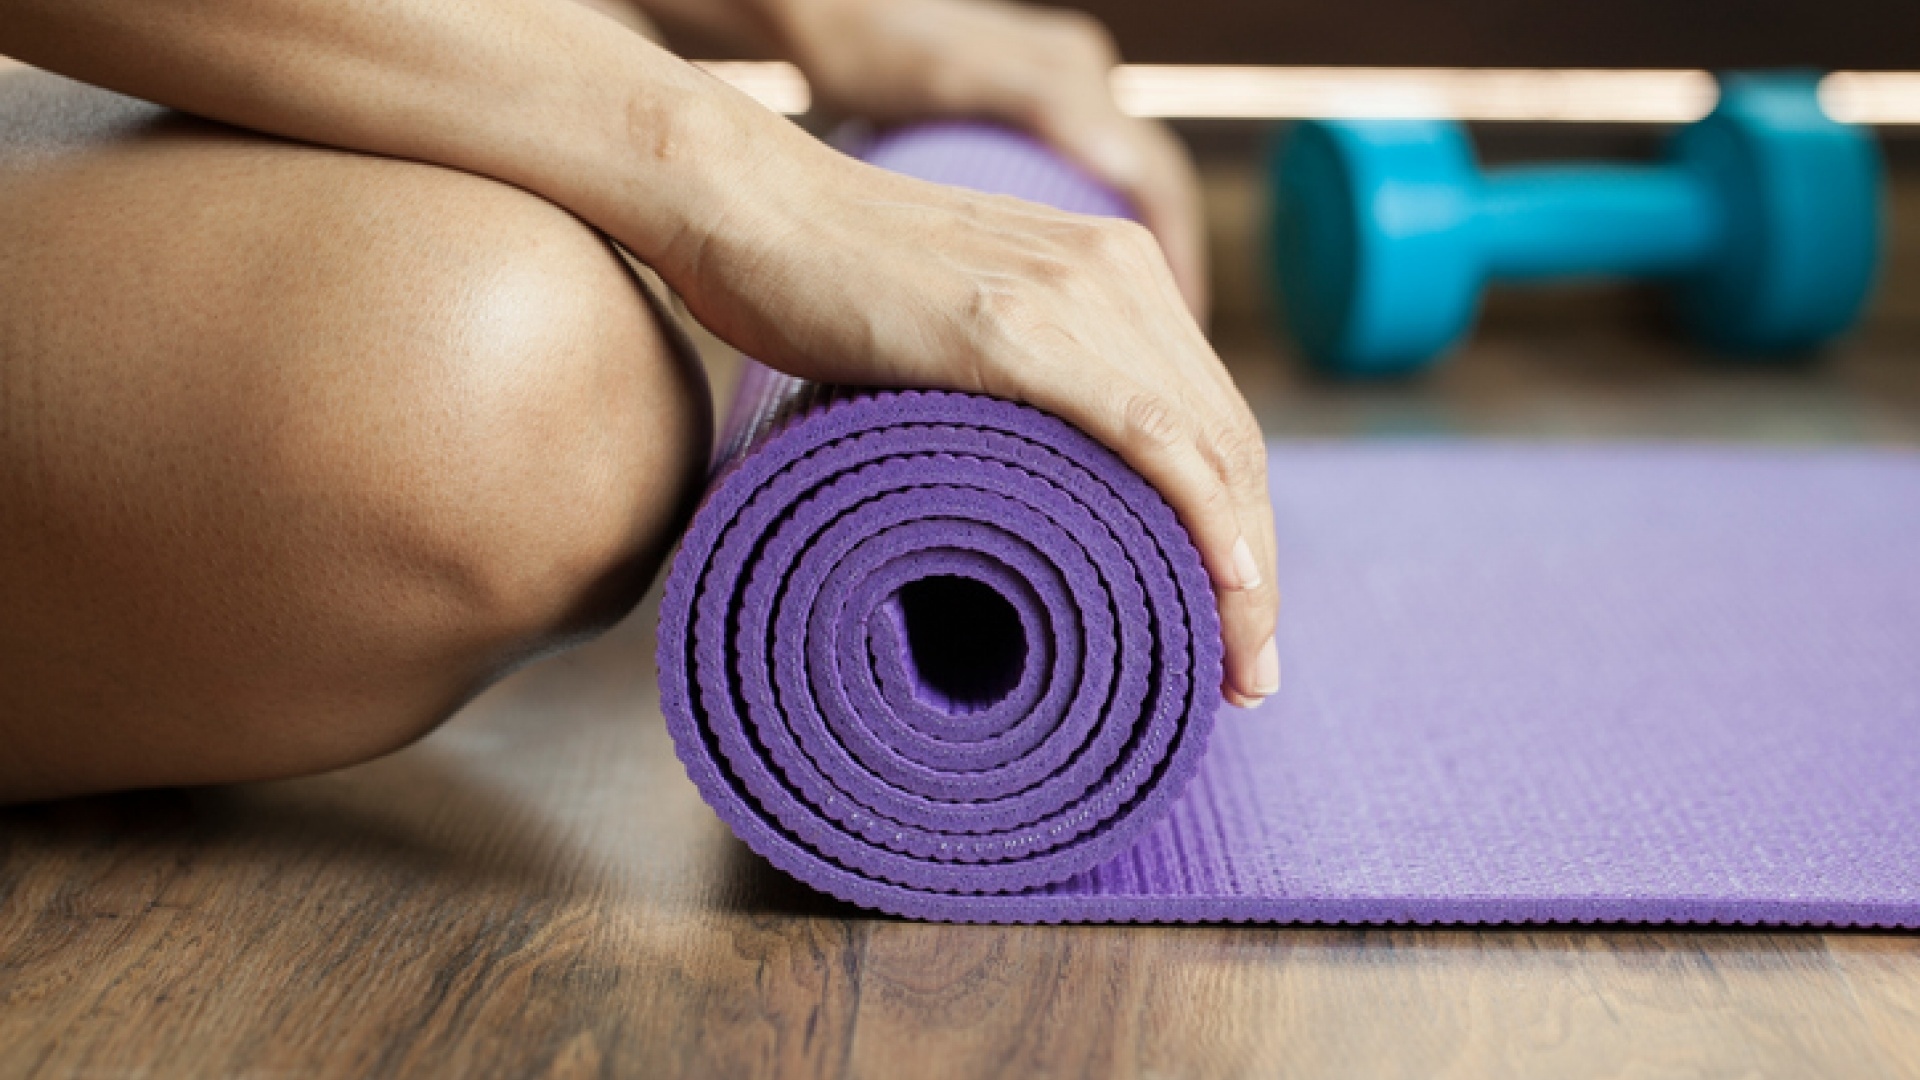 Which yoga is helpful for beginners? 1